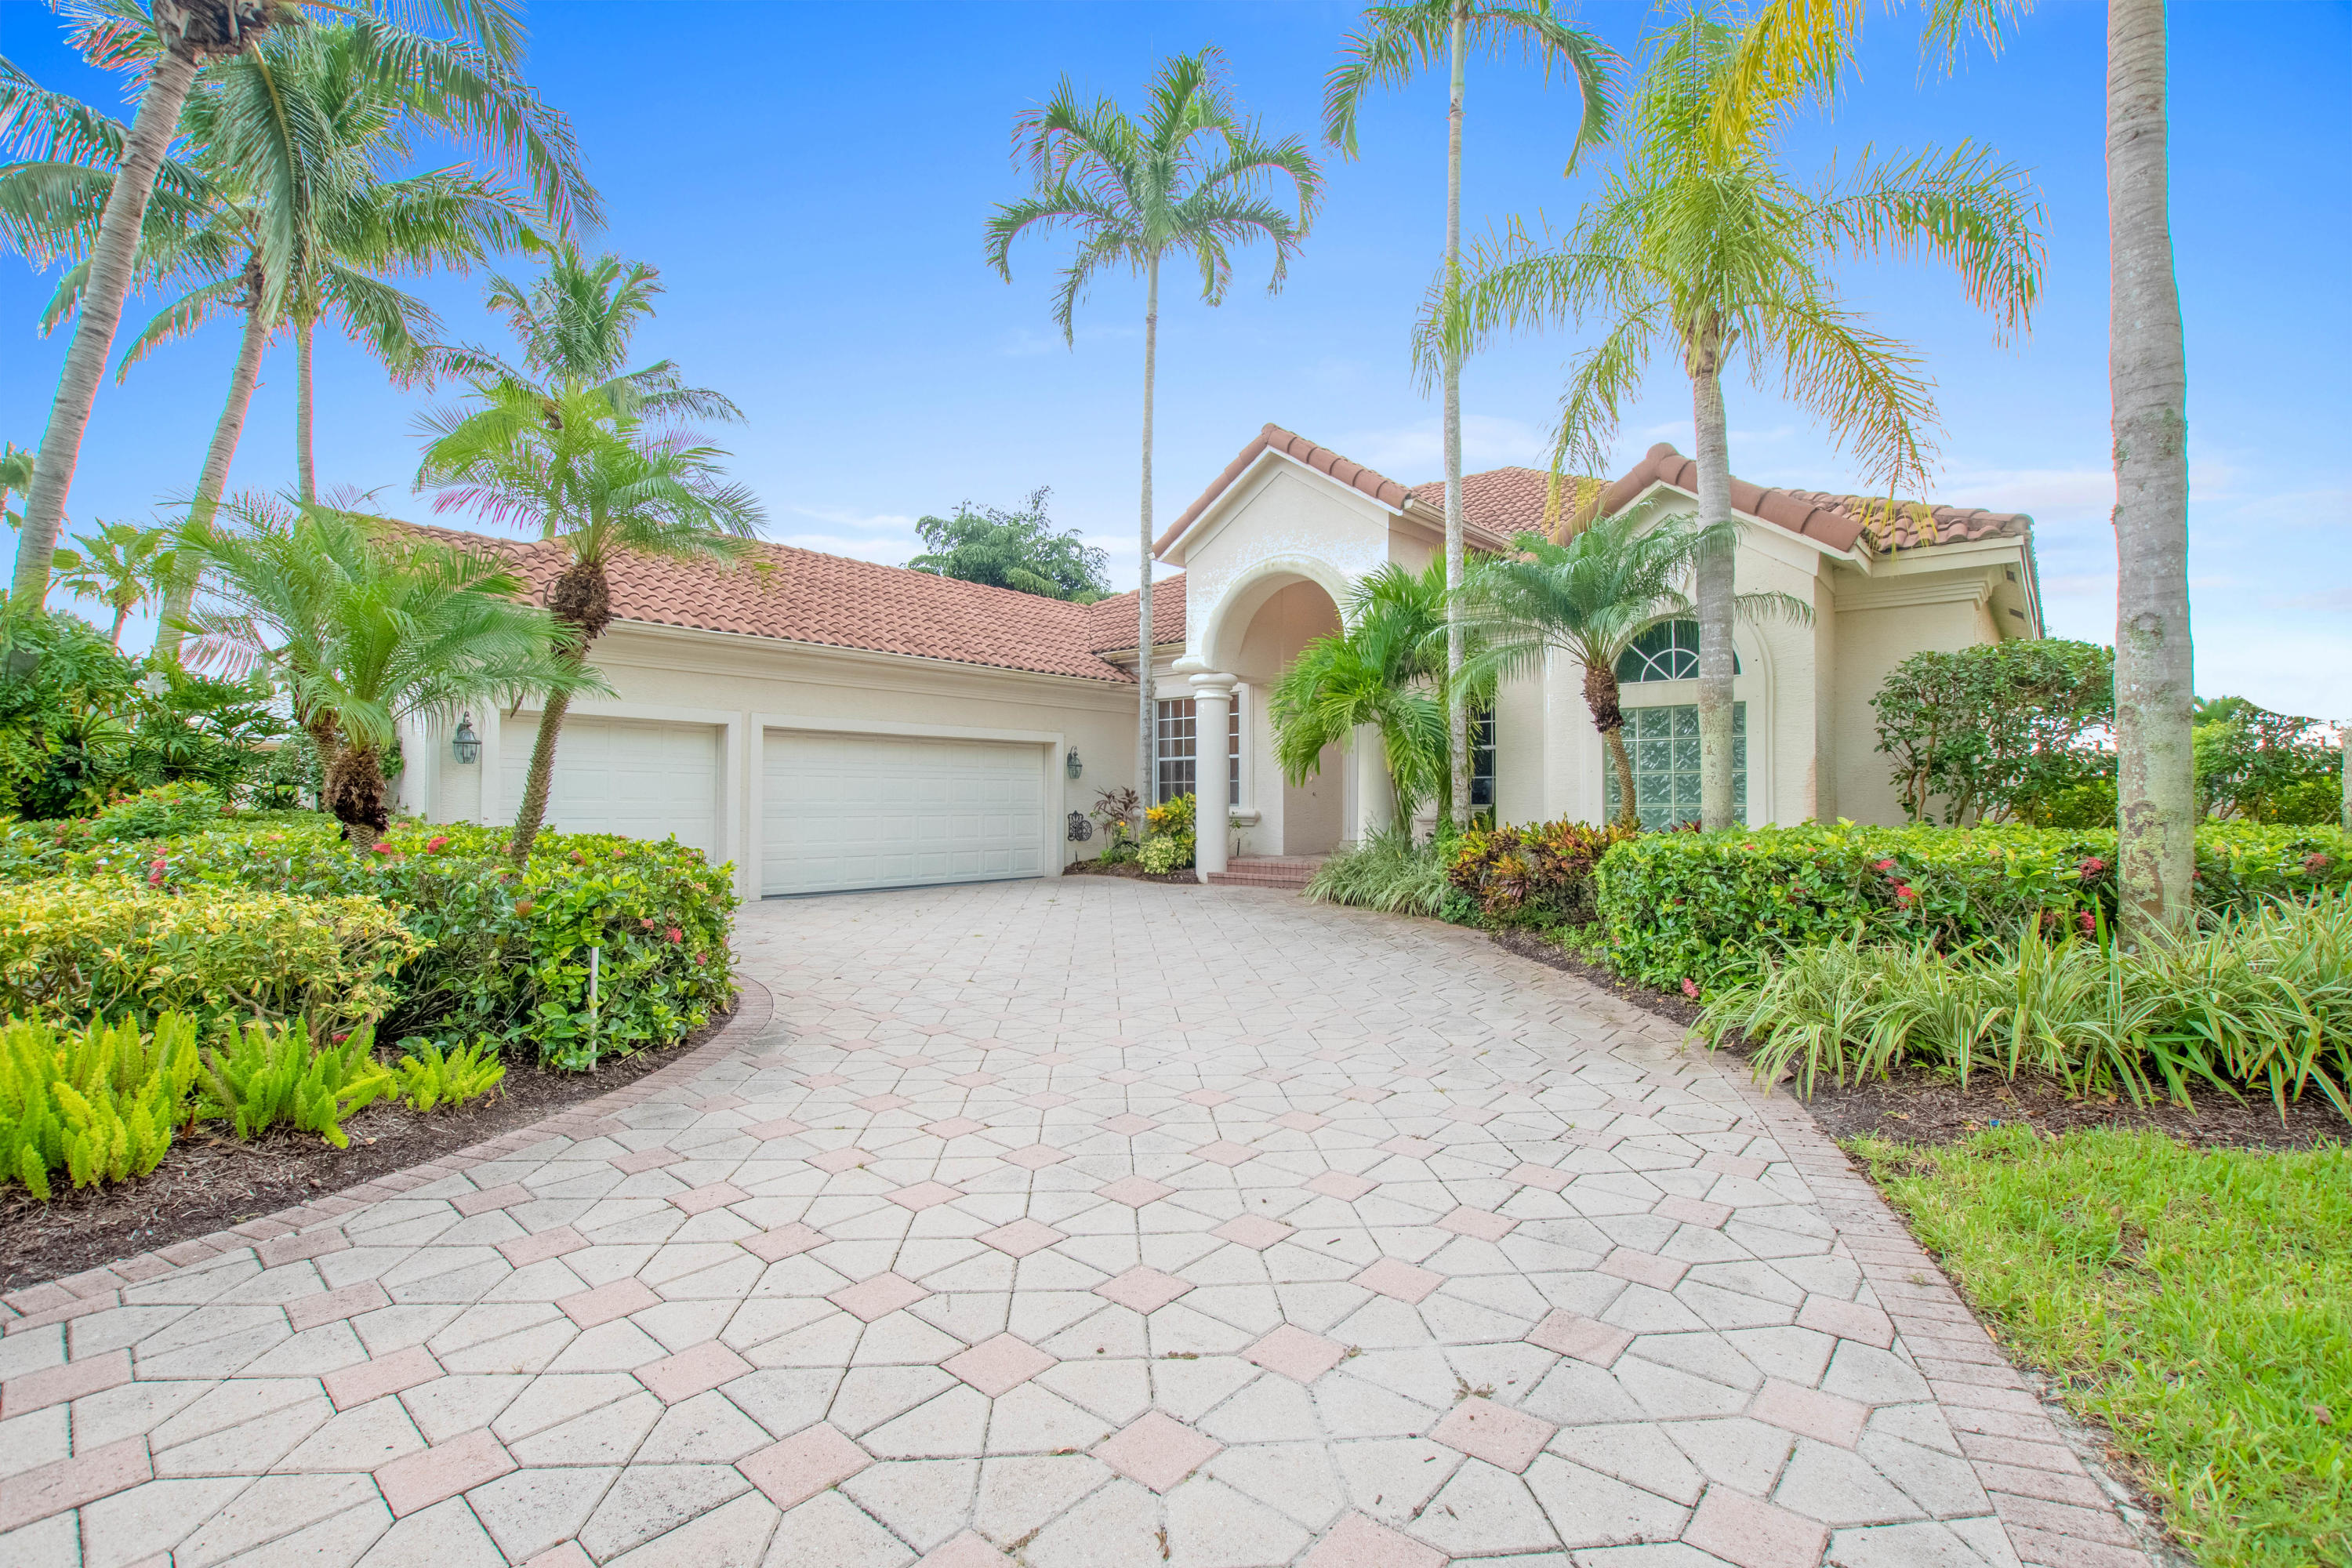 12490 Sunnydale Drive, Wellington, Florida 33414, 3 Bedrooms Bedrooms, ,3.1 BathroomsBathrooms,Single Family,For Rent,PALM BEACH POLO,Sunnydale,1,RX-10453508